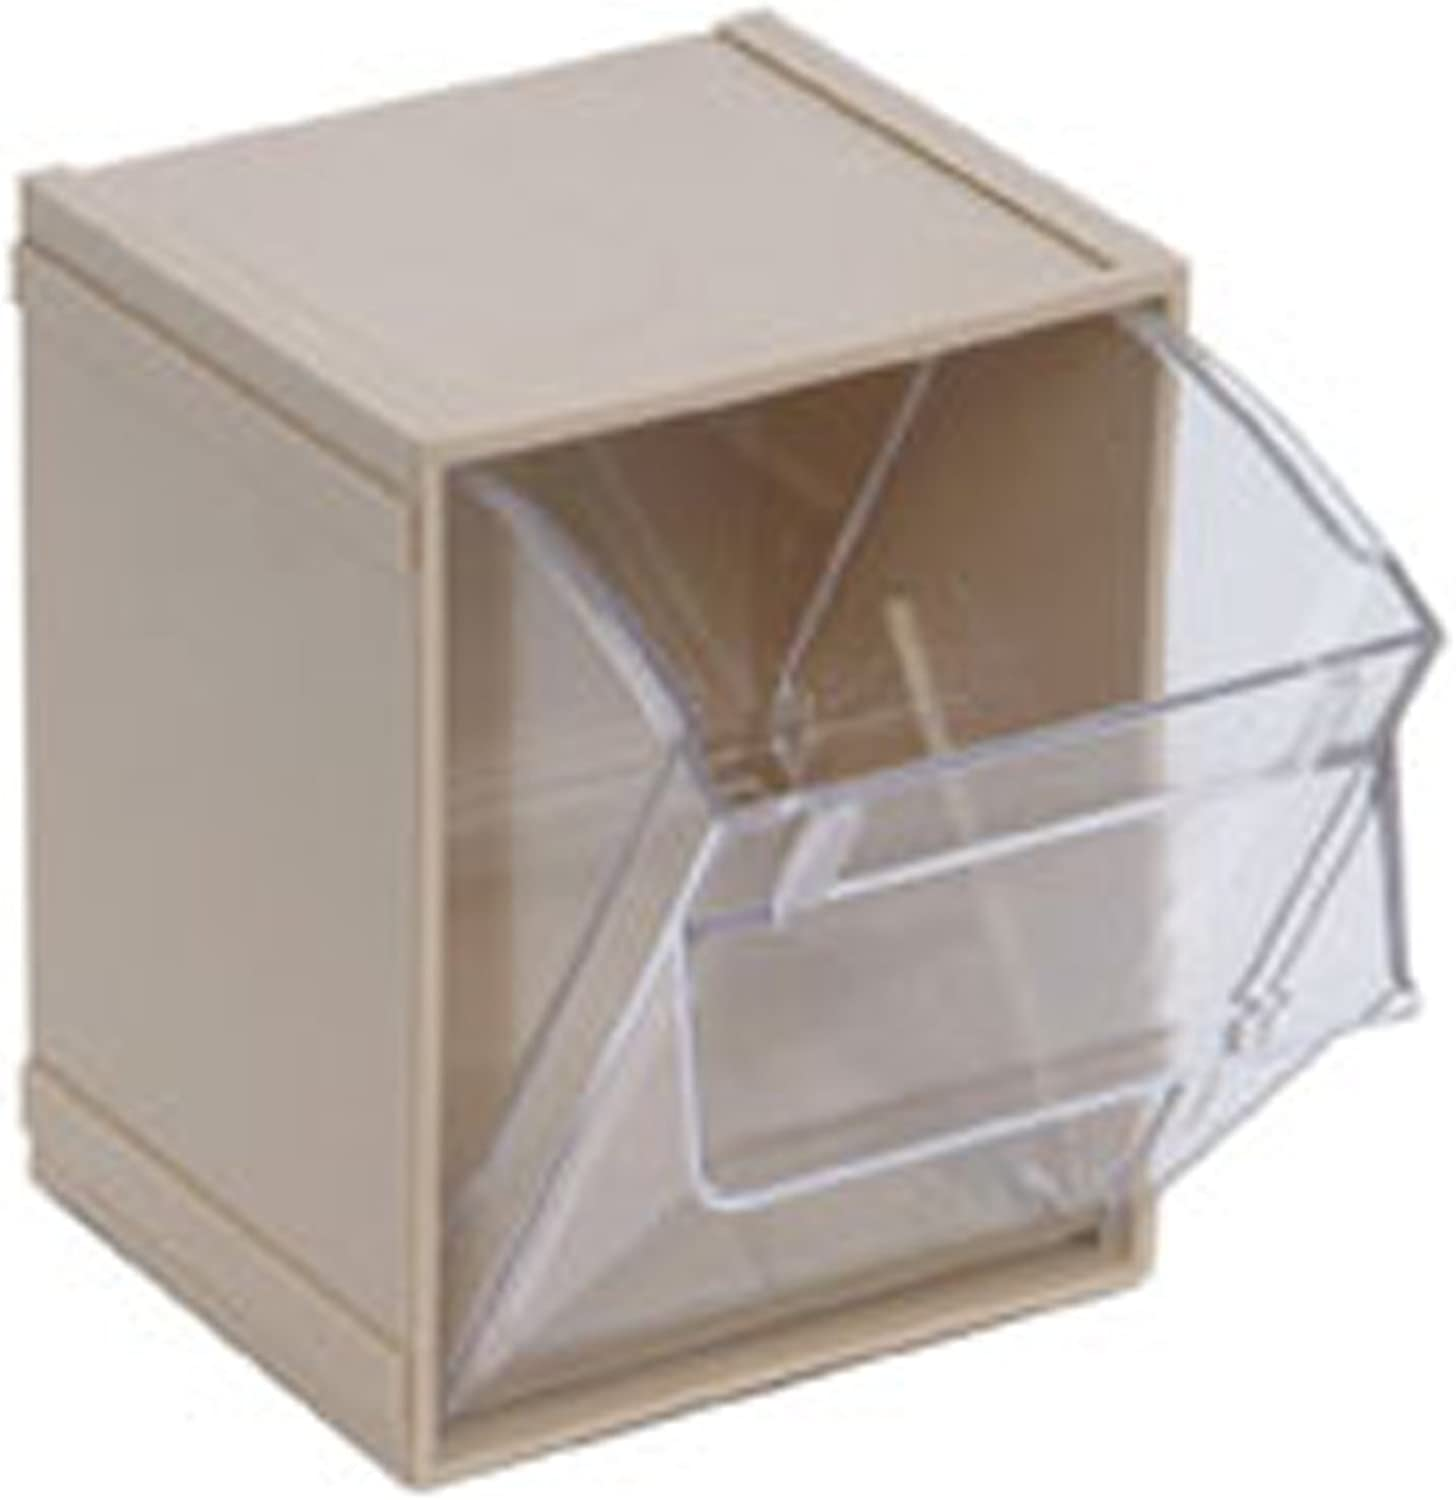 Quantum QTB405 Clear 4-Inch by 4-1 2-Inch by 8-1 8-Inch Tip Out Bin System, Ivory, Case of 5